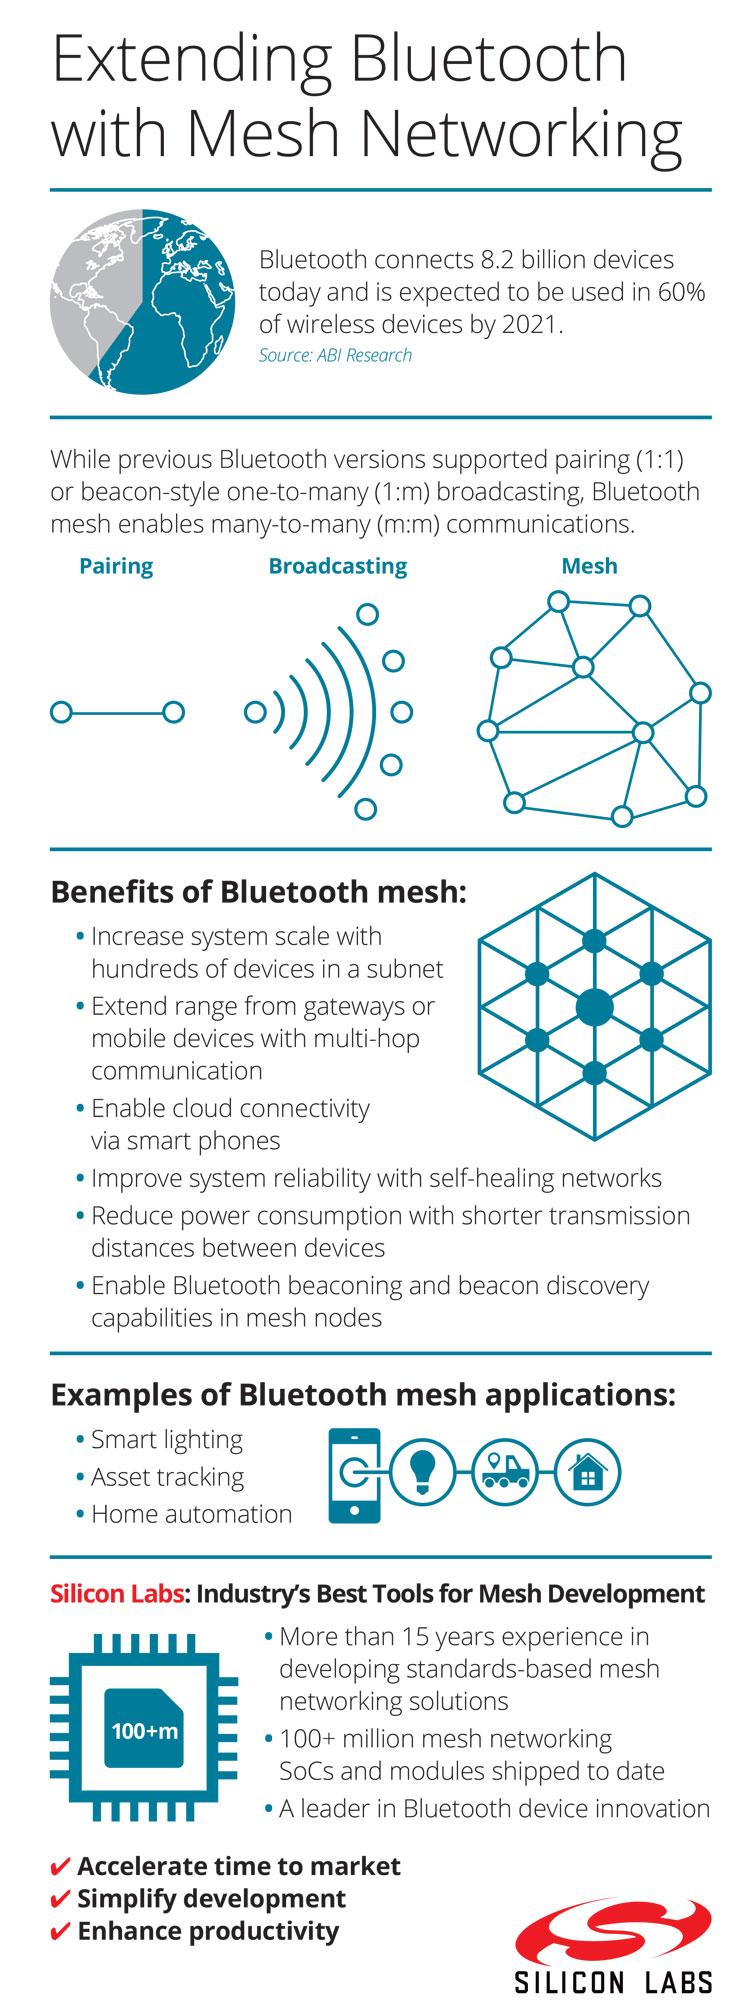 Bluetooth mesh networking